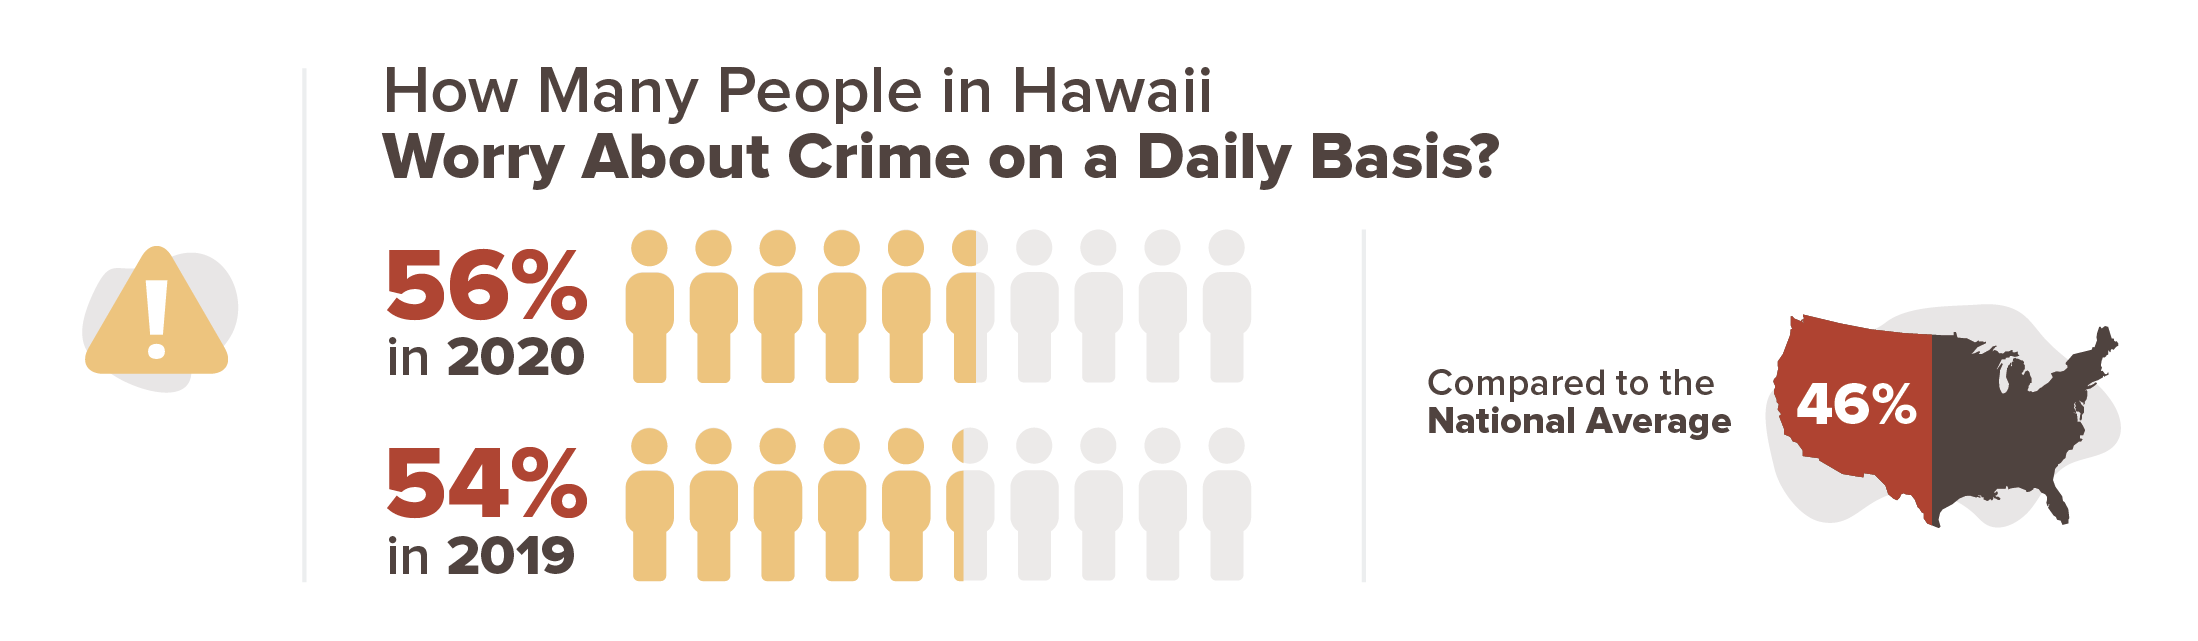 Hawaii crime stats infographic